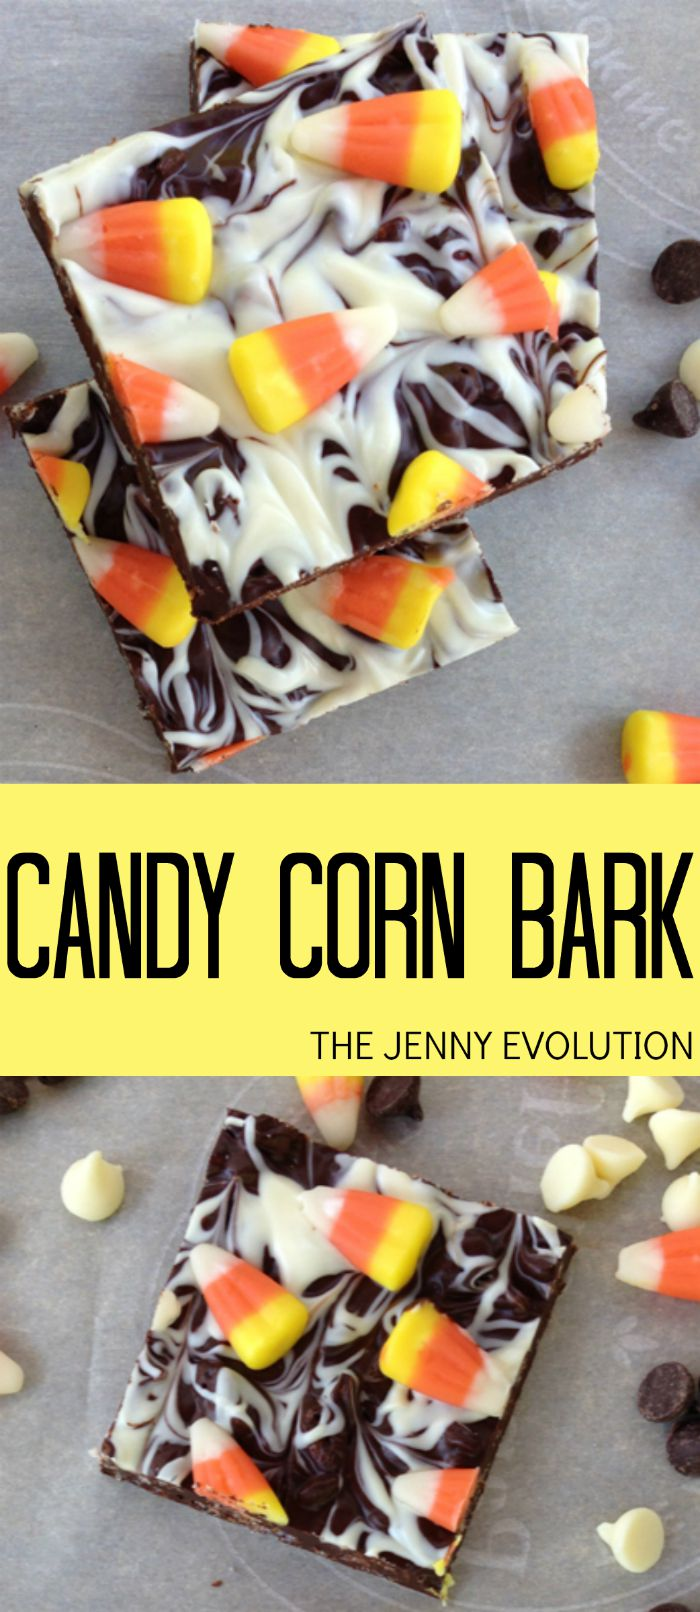 Candy Corn Bark Recipe | The Jenny Evolution